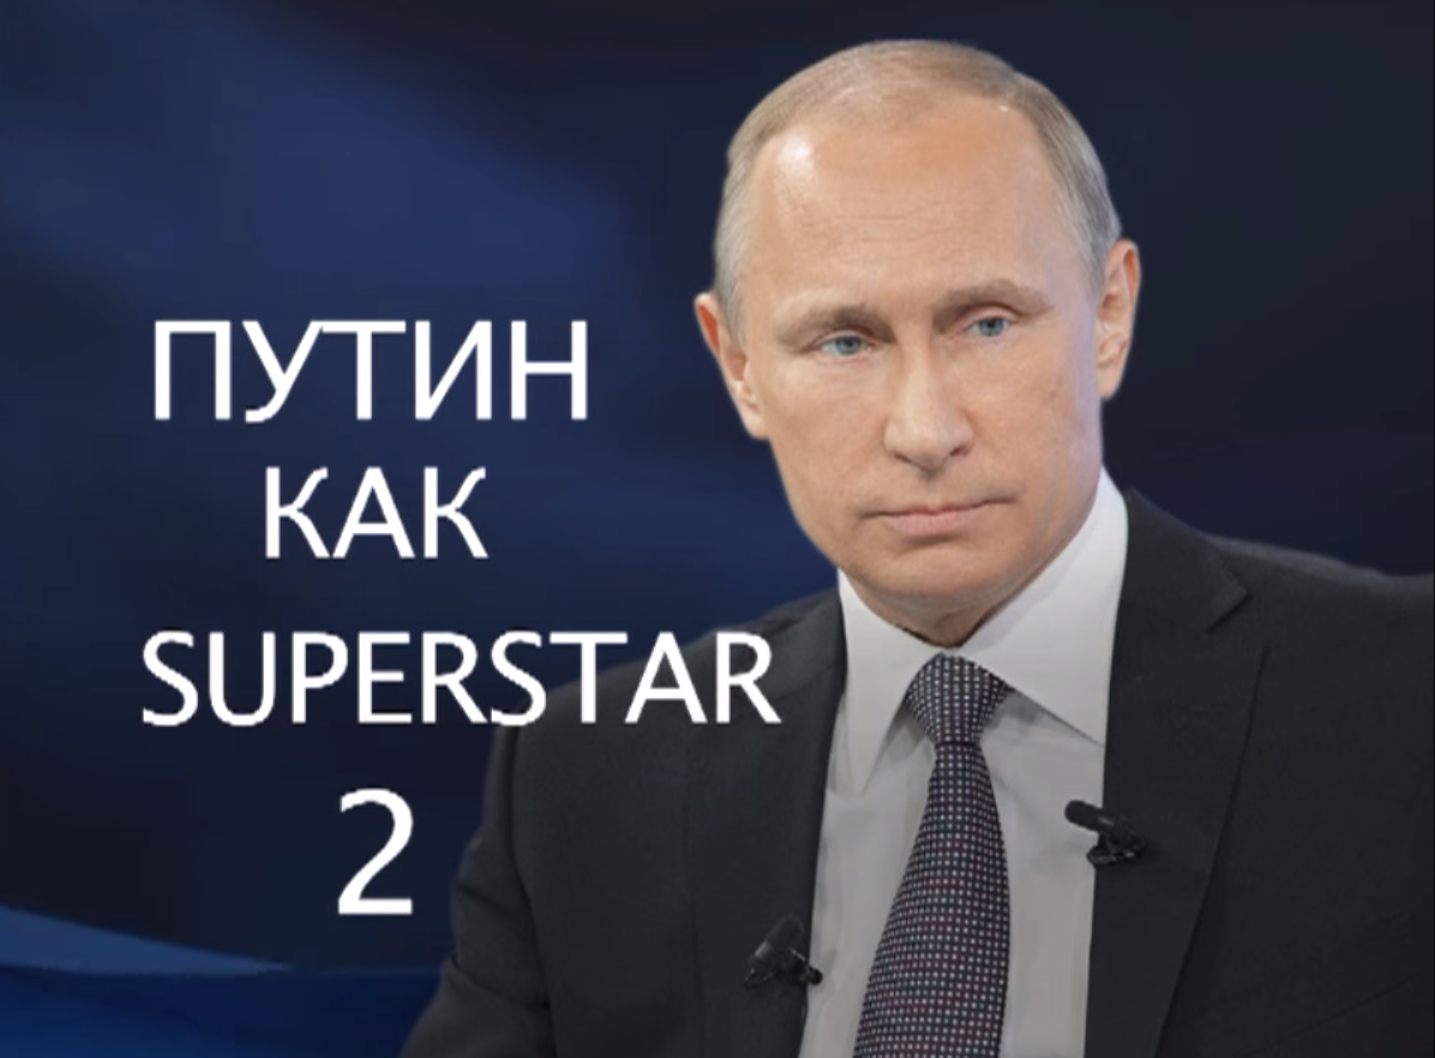 Путин как  Superstar 2